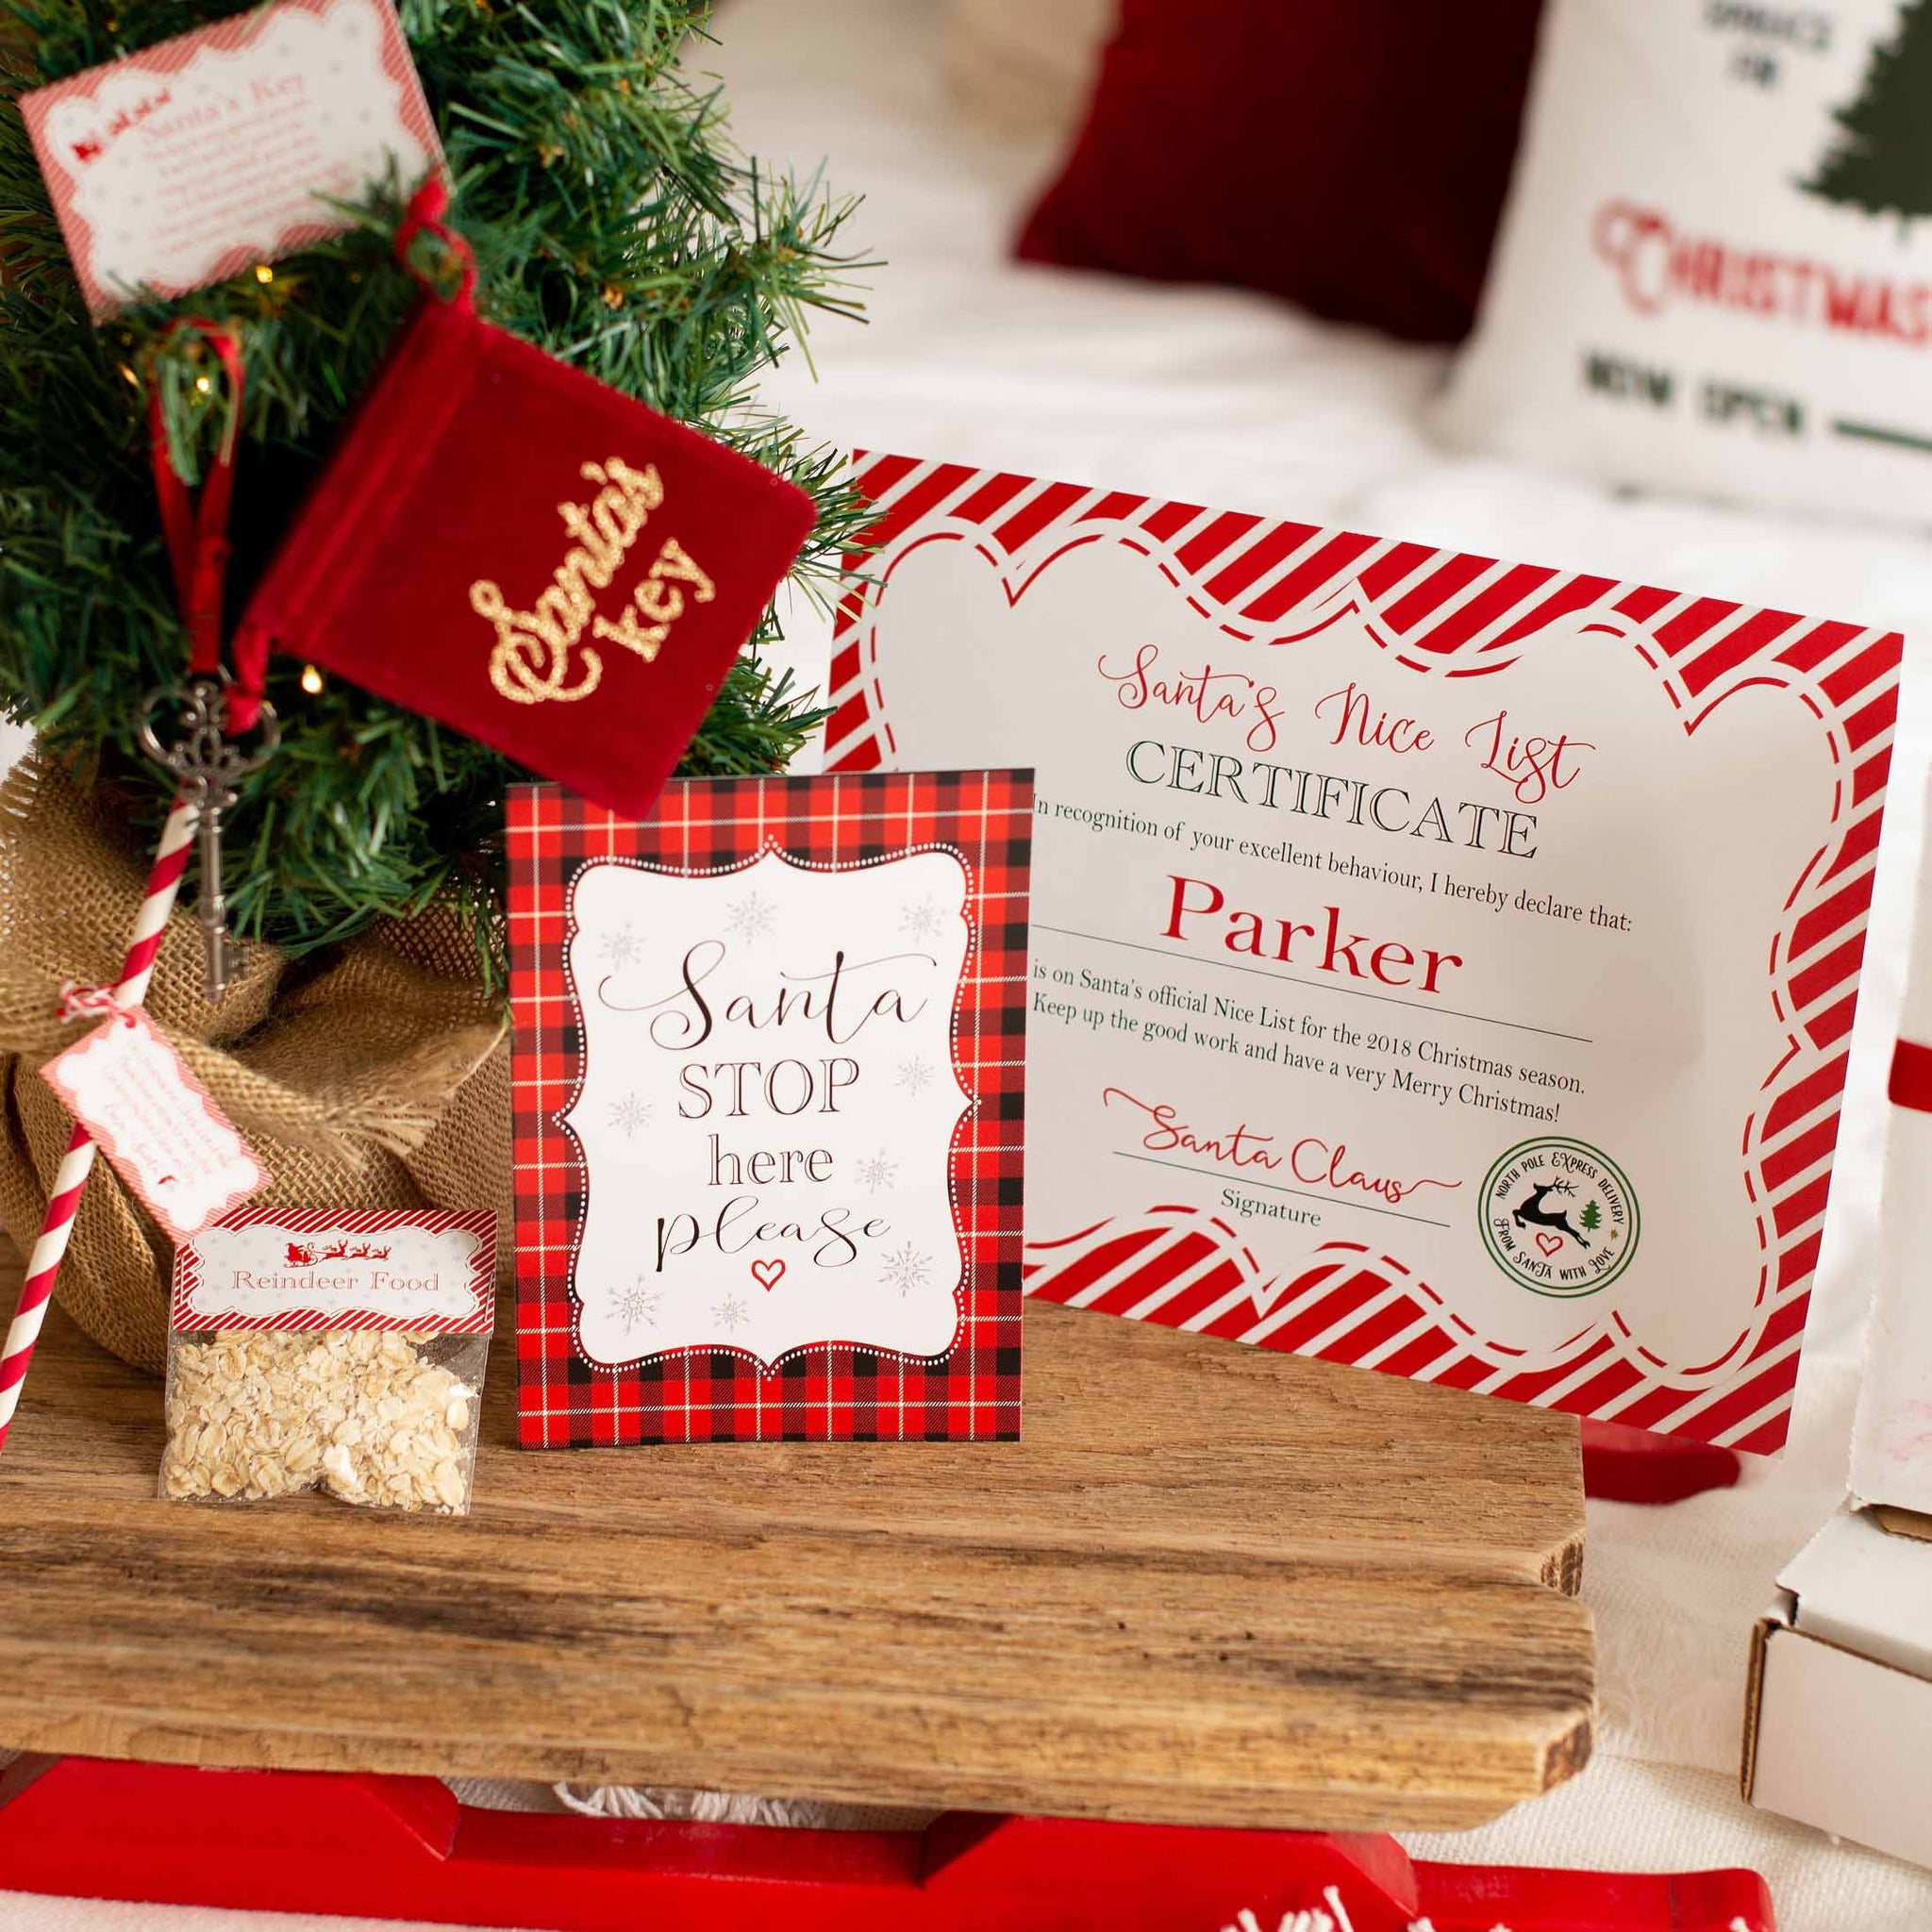 Christmas Certificate.Christmas Eve Box With Nice List Certificate And Santa S Key